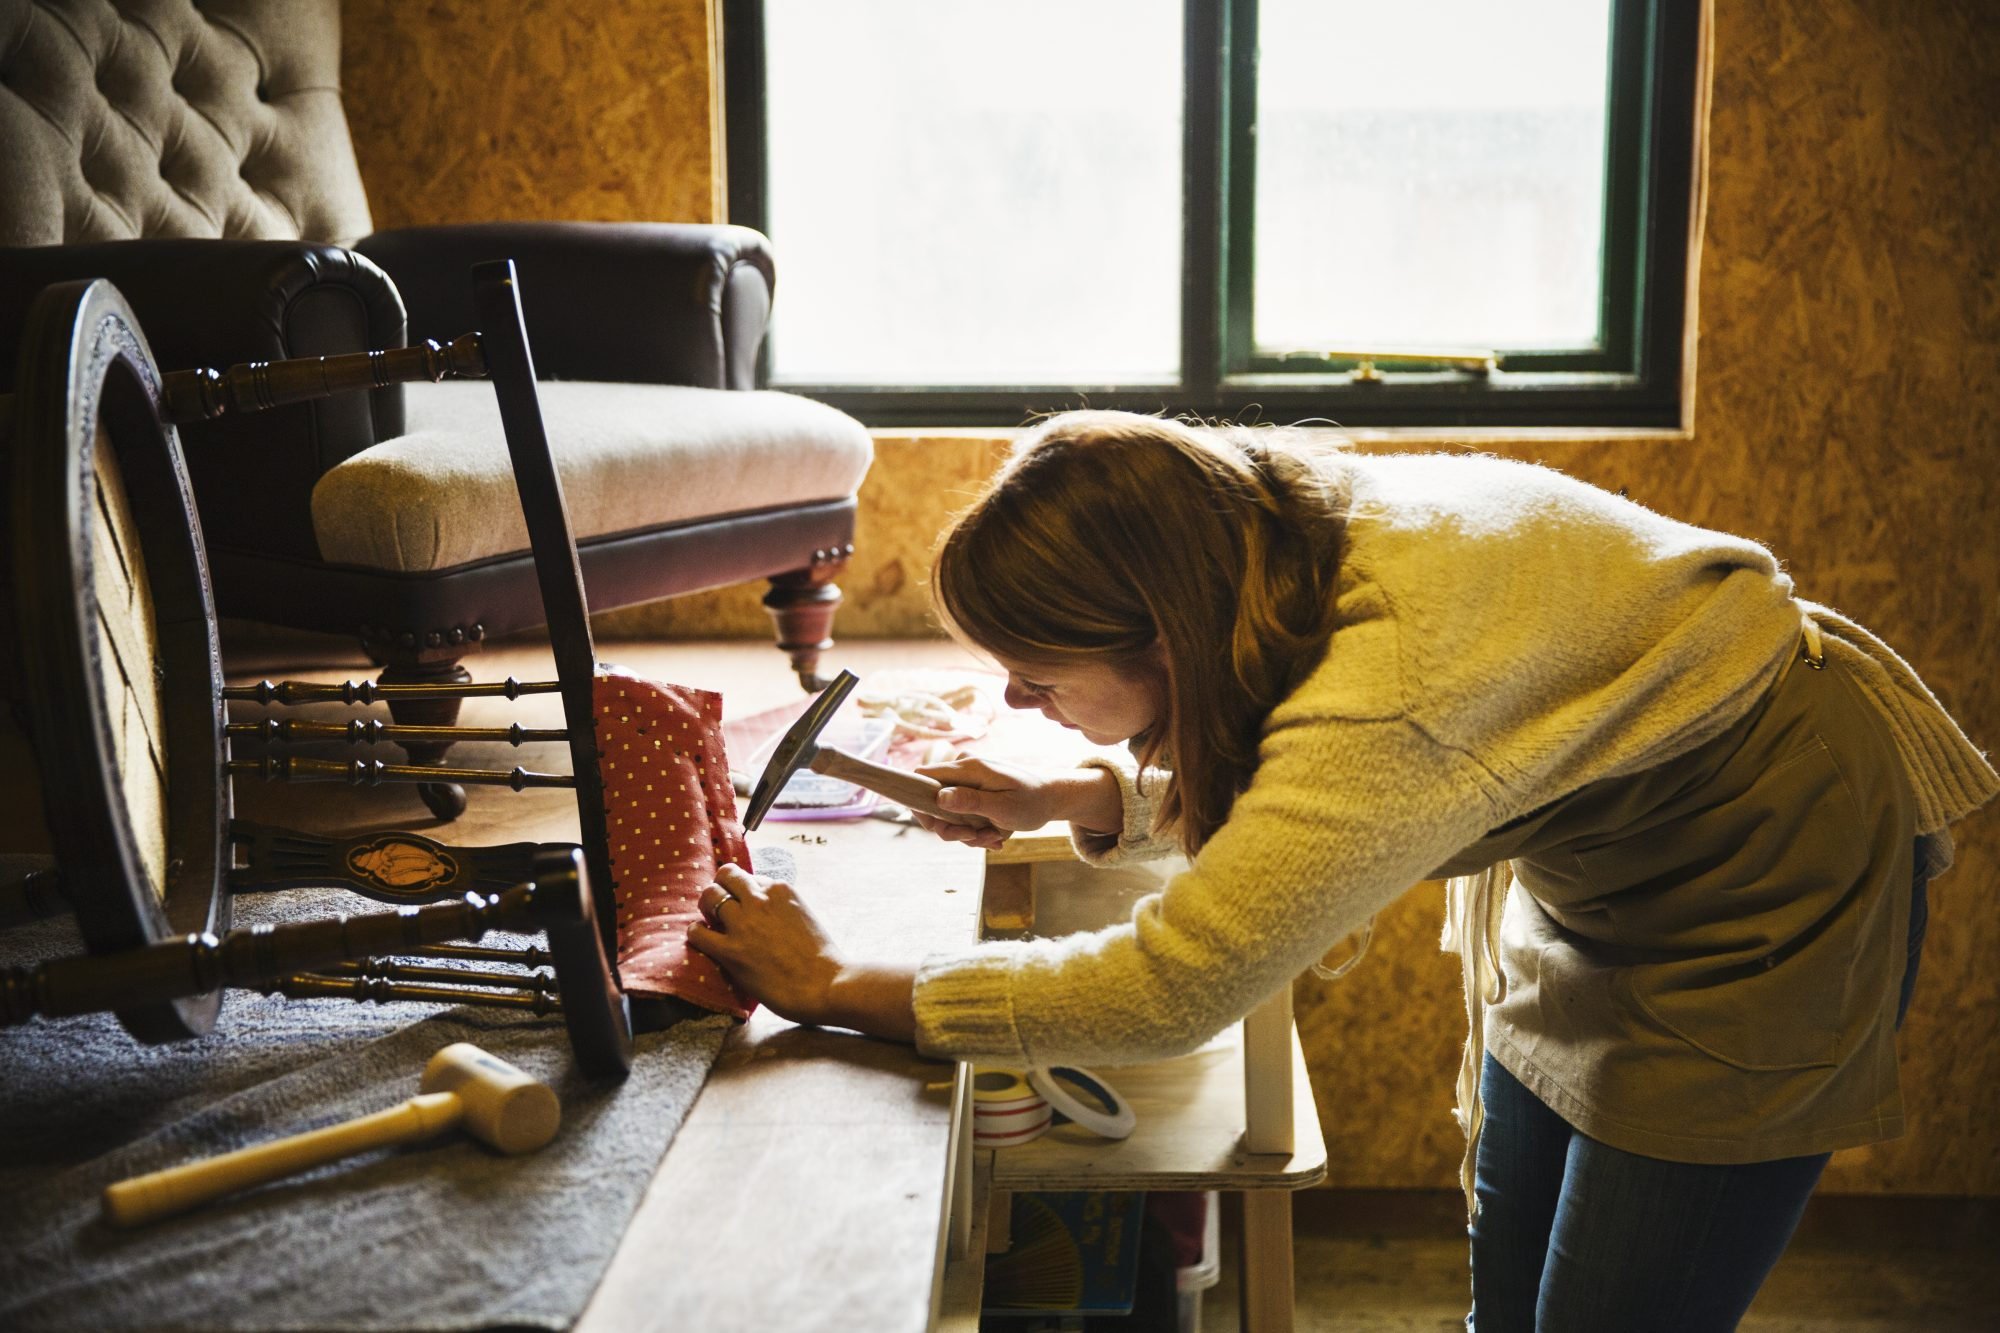 woman hammering fabric and padding to a chair frame in her upholstery workshop